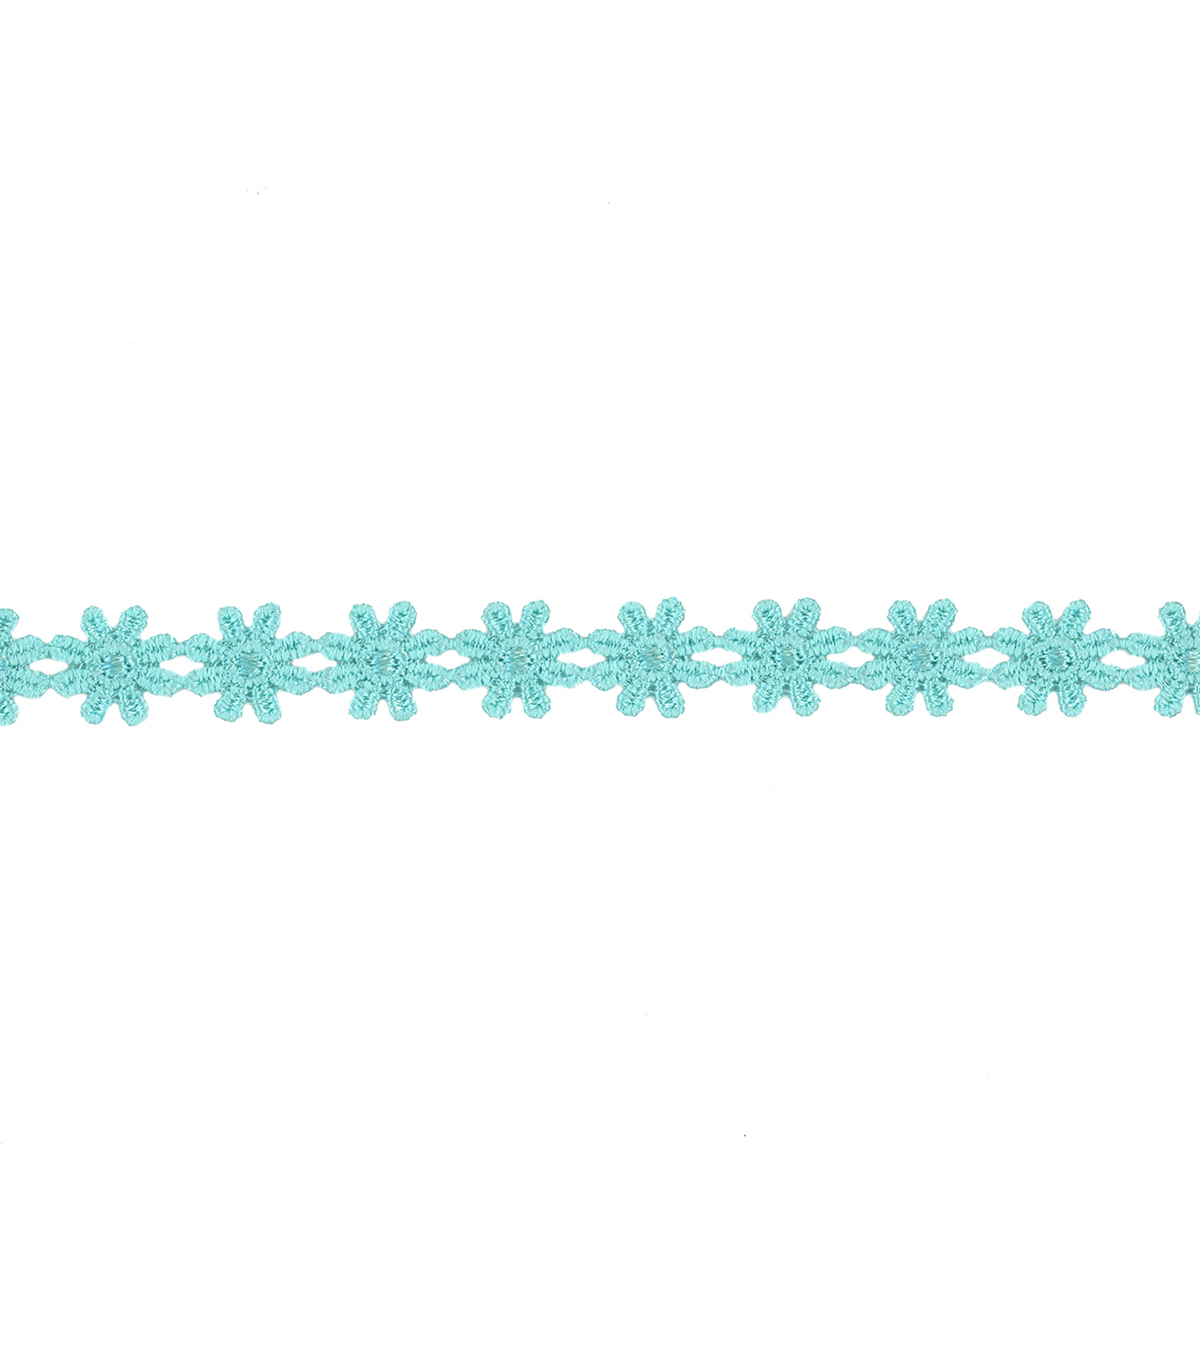 Simplicity Trims-3/8\u0022 Aqua Small Daisy Venices